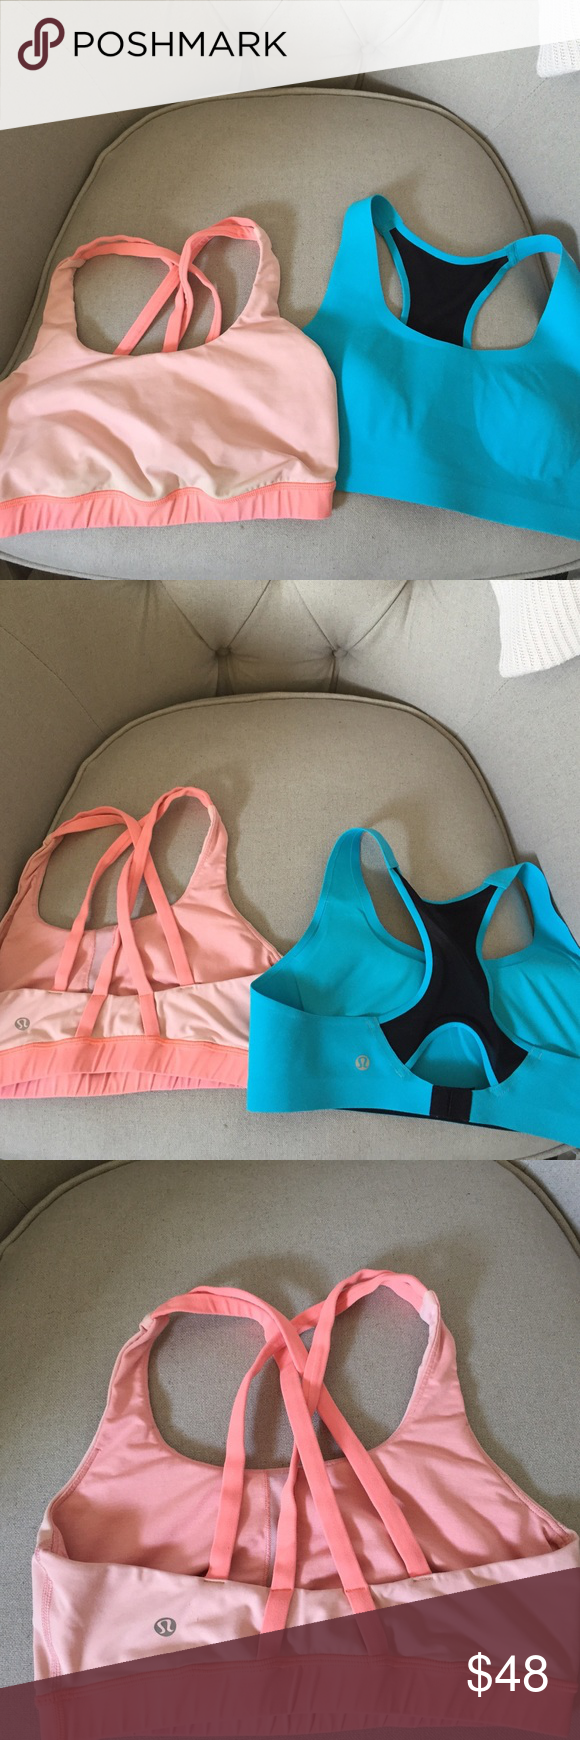 2 Lululemon Sports bras! Read description below! 2 Lululemon sports bras. These are re-poshes. ❤️ 1. Light orange Energy bra - size dot removed but sold to me as a 10. I think it's more of an 8. Light usage but in overall good condition! 2. Light blue Bitty Bracer bra - size 38C. This was sold me as stretchy and it is not. It was also new with tag BUT I had to wash it yesterday so it smelled clean. 😉 This would fit a 36 band width. This is a great deal for 2 LL bras but understand they will…